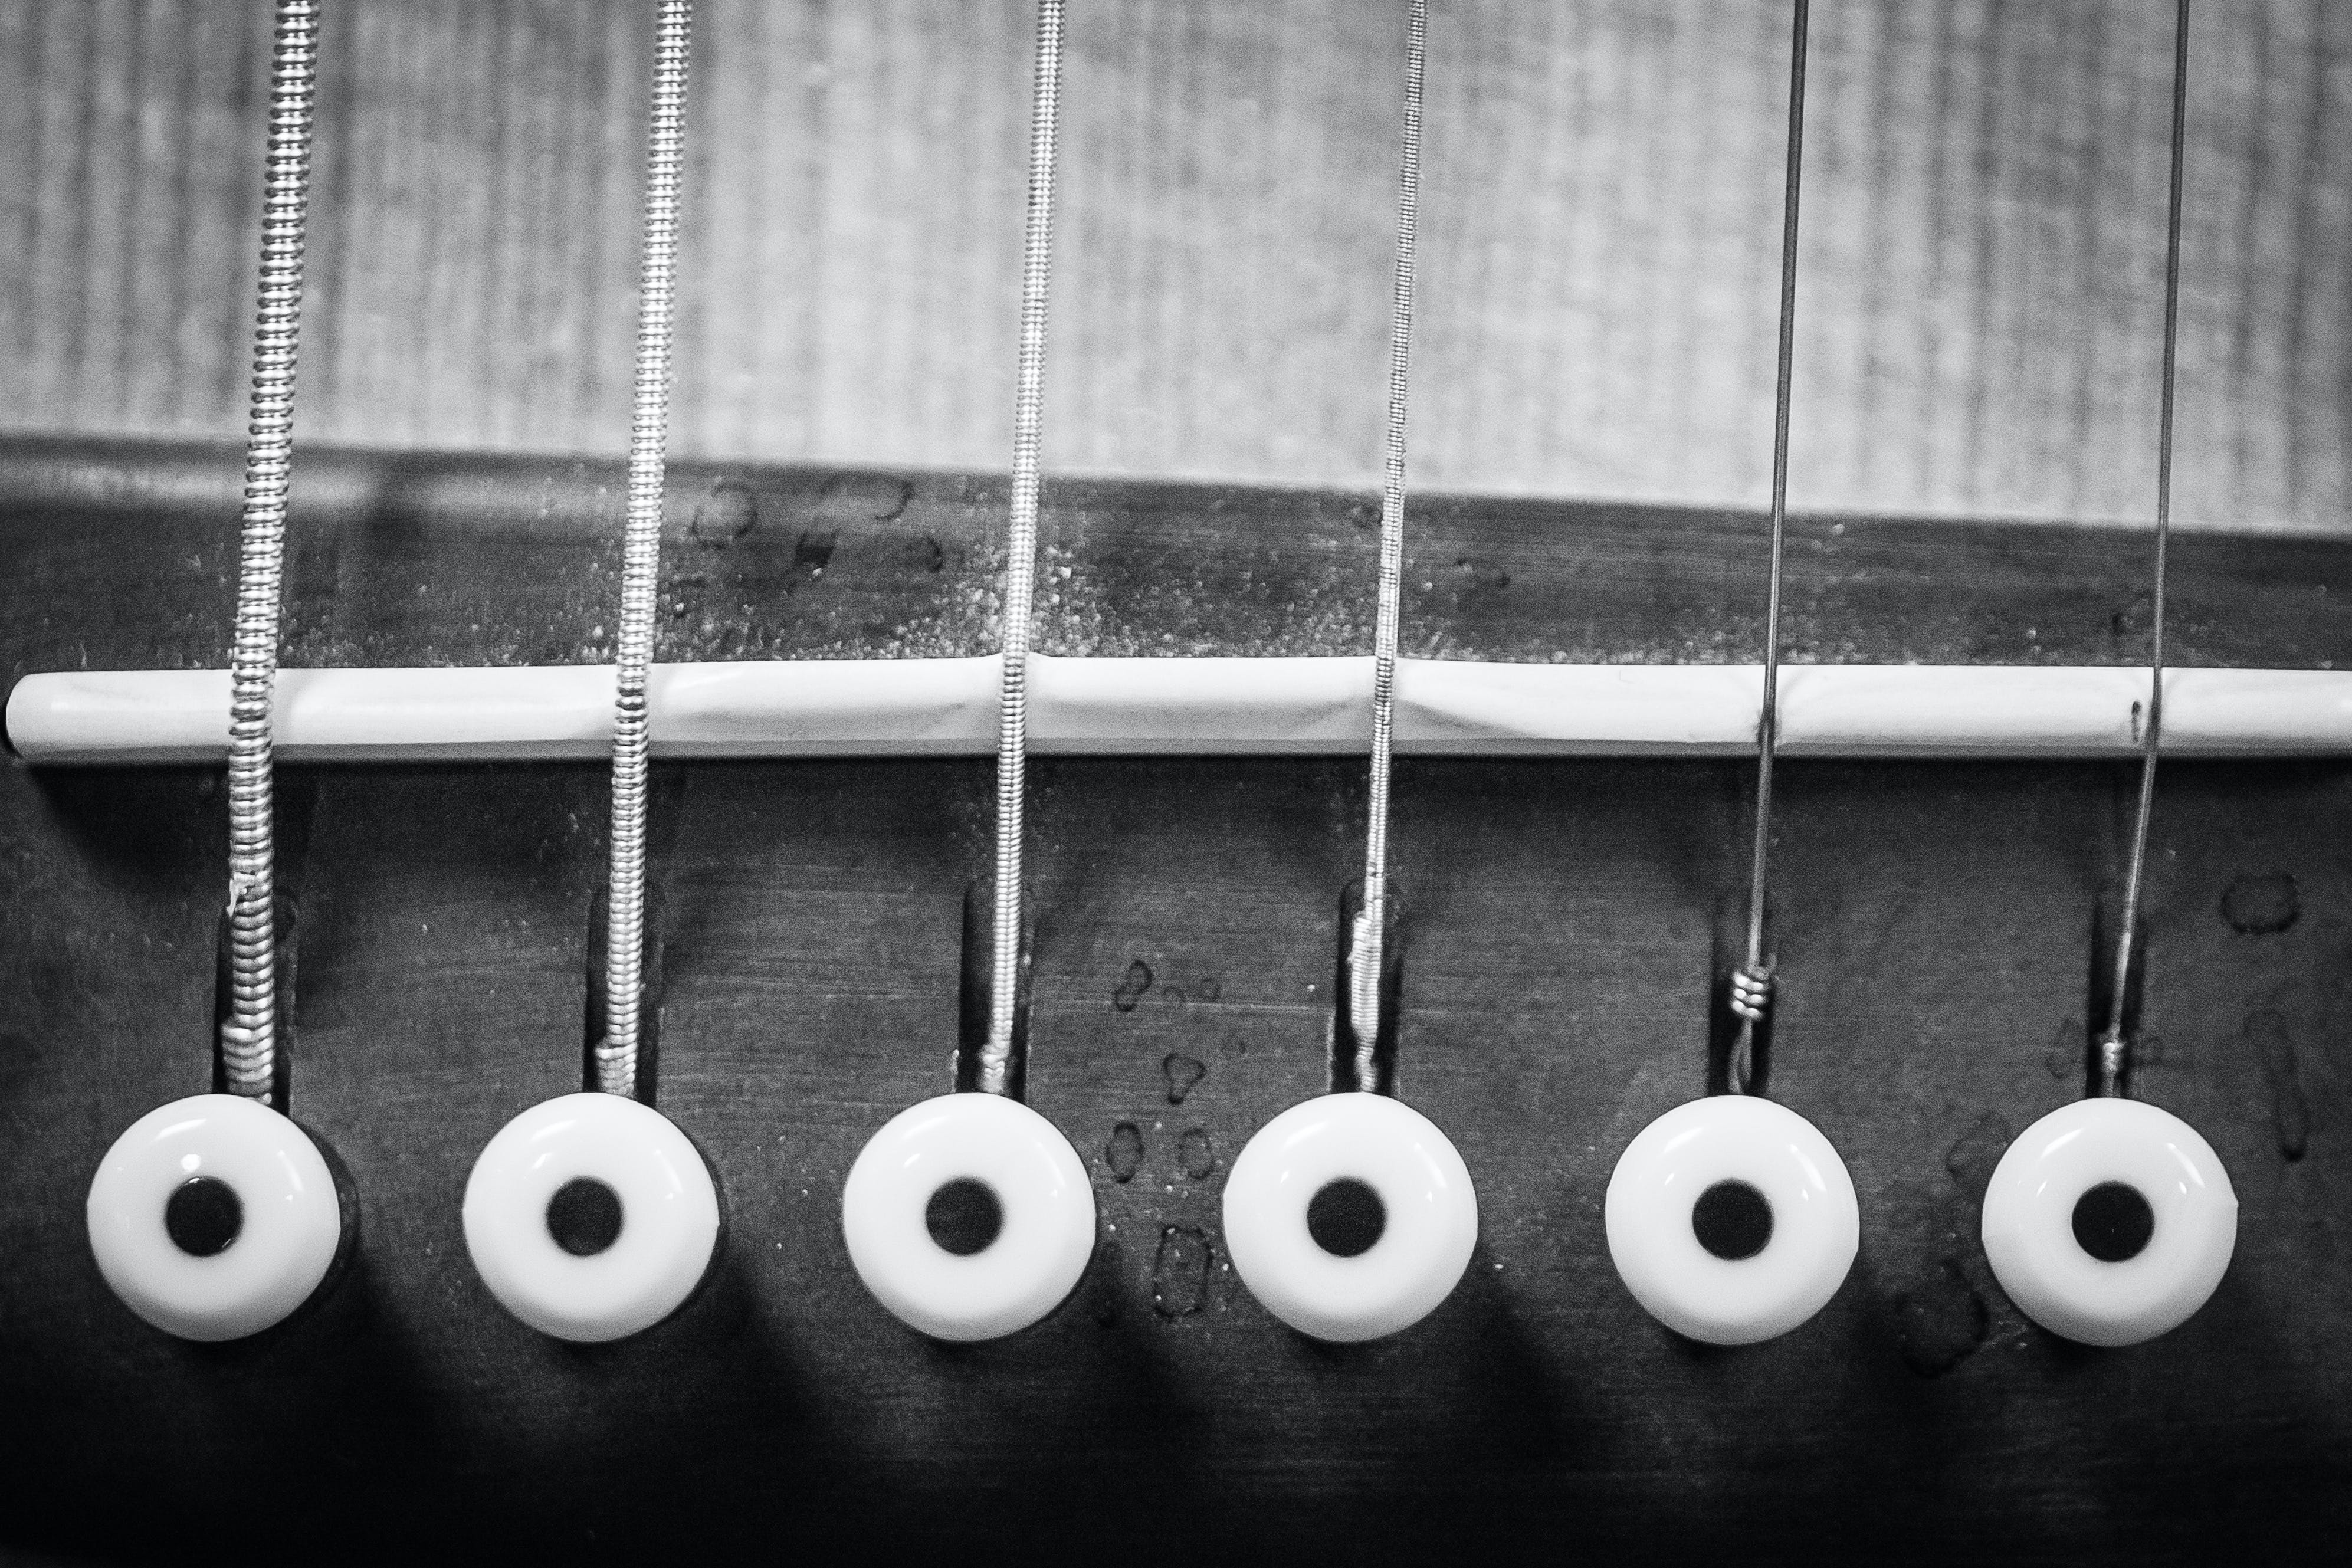 Closeup Grayscale Photo of Acoustic Guitar